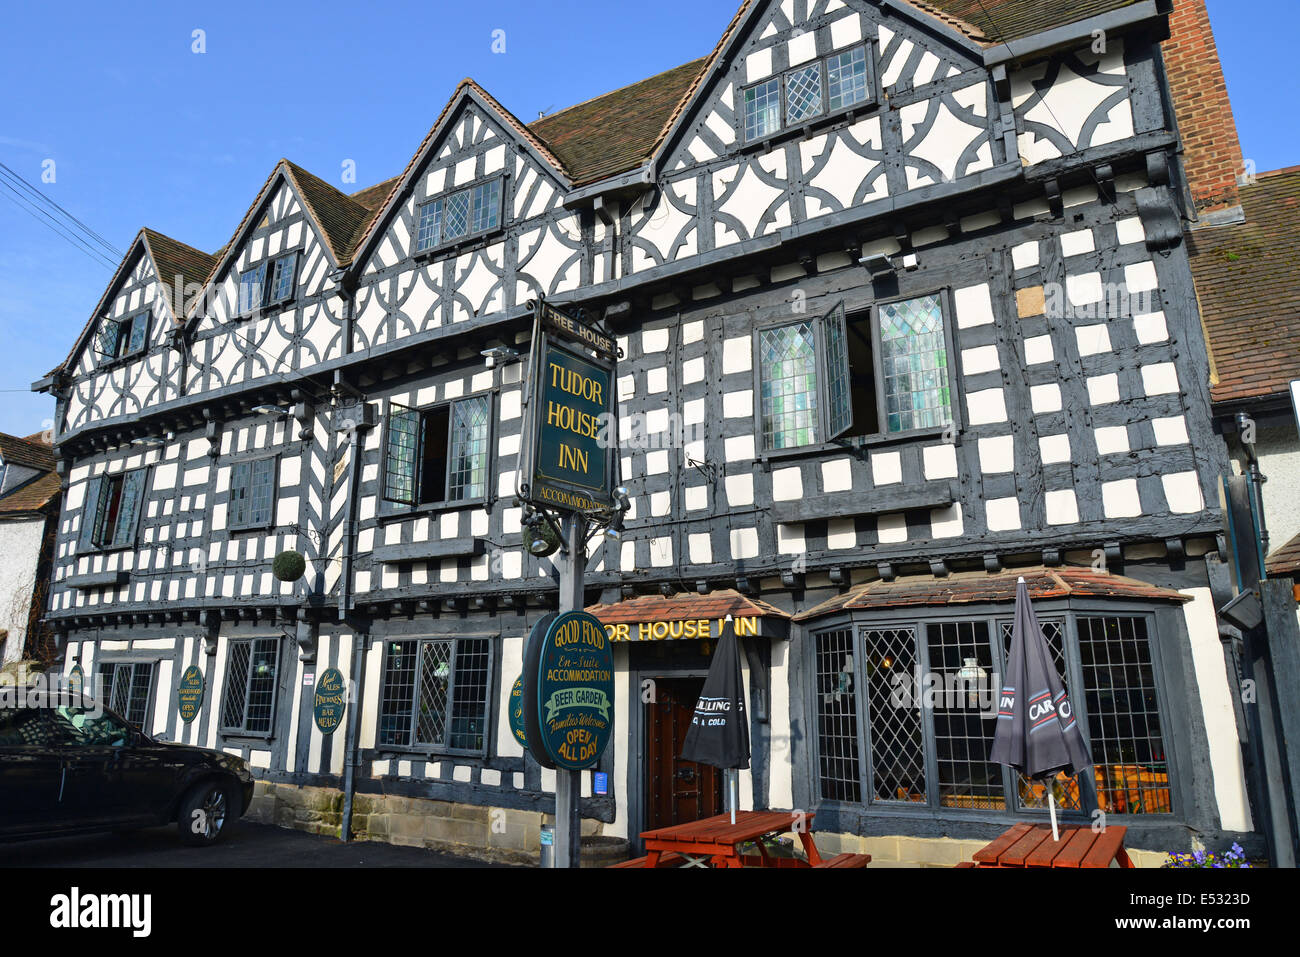 15th Century Tudor House Inn West Street Warwick